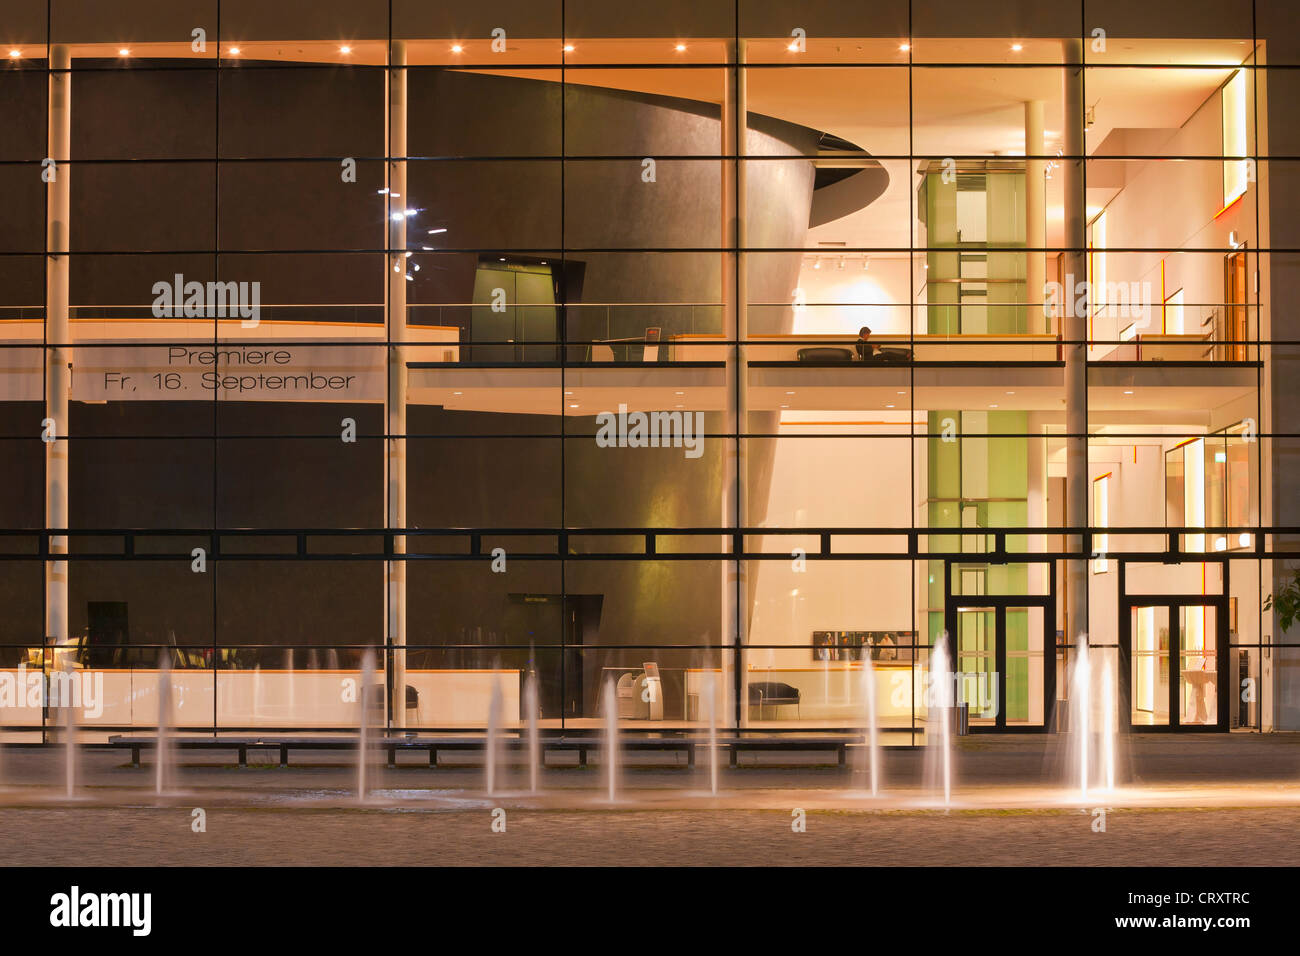 Germany, Thuringia, Erfurt, View of modern theatre - Stock Image